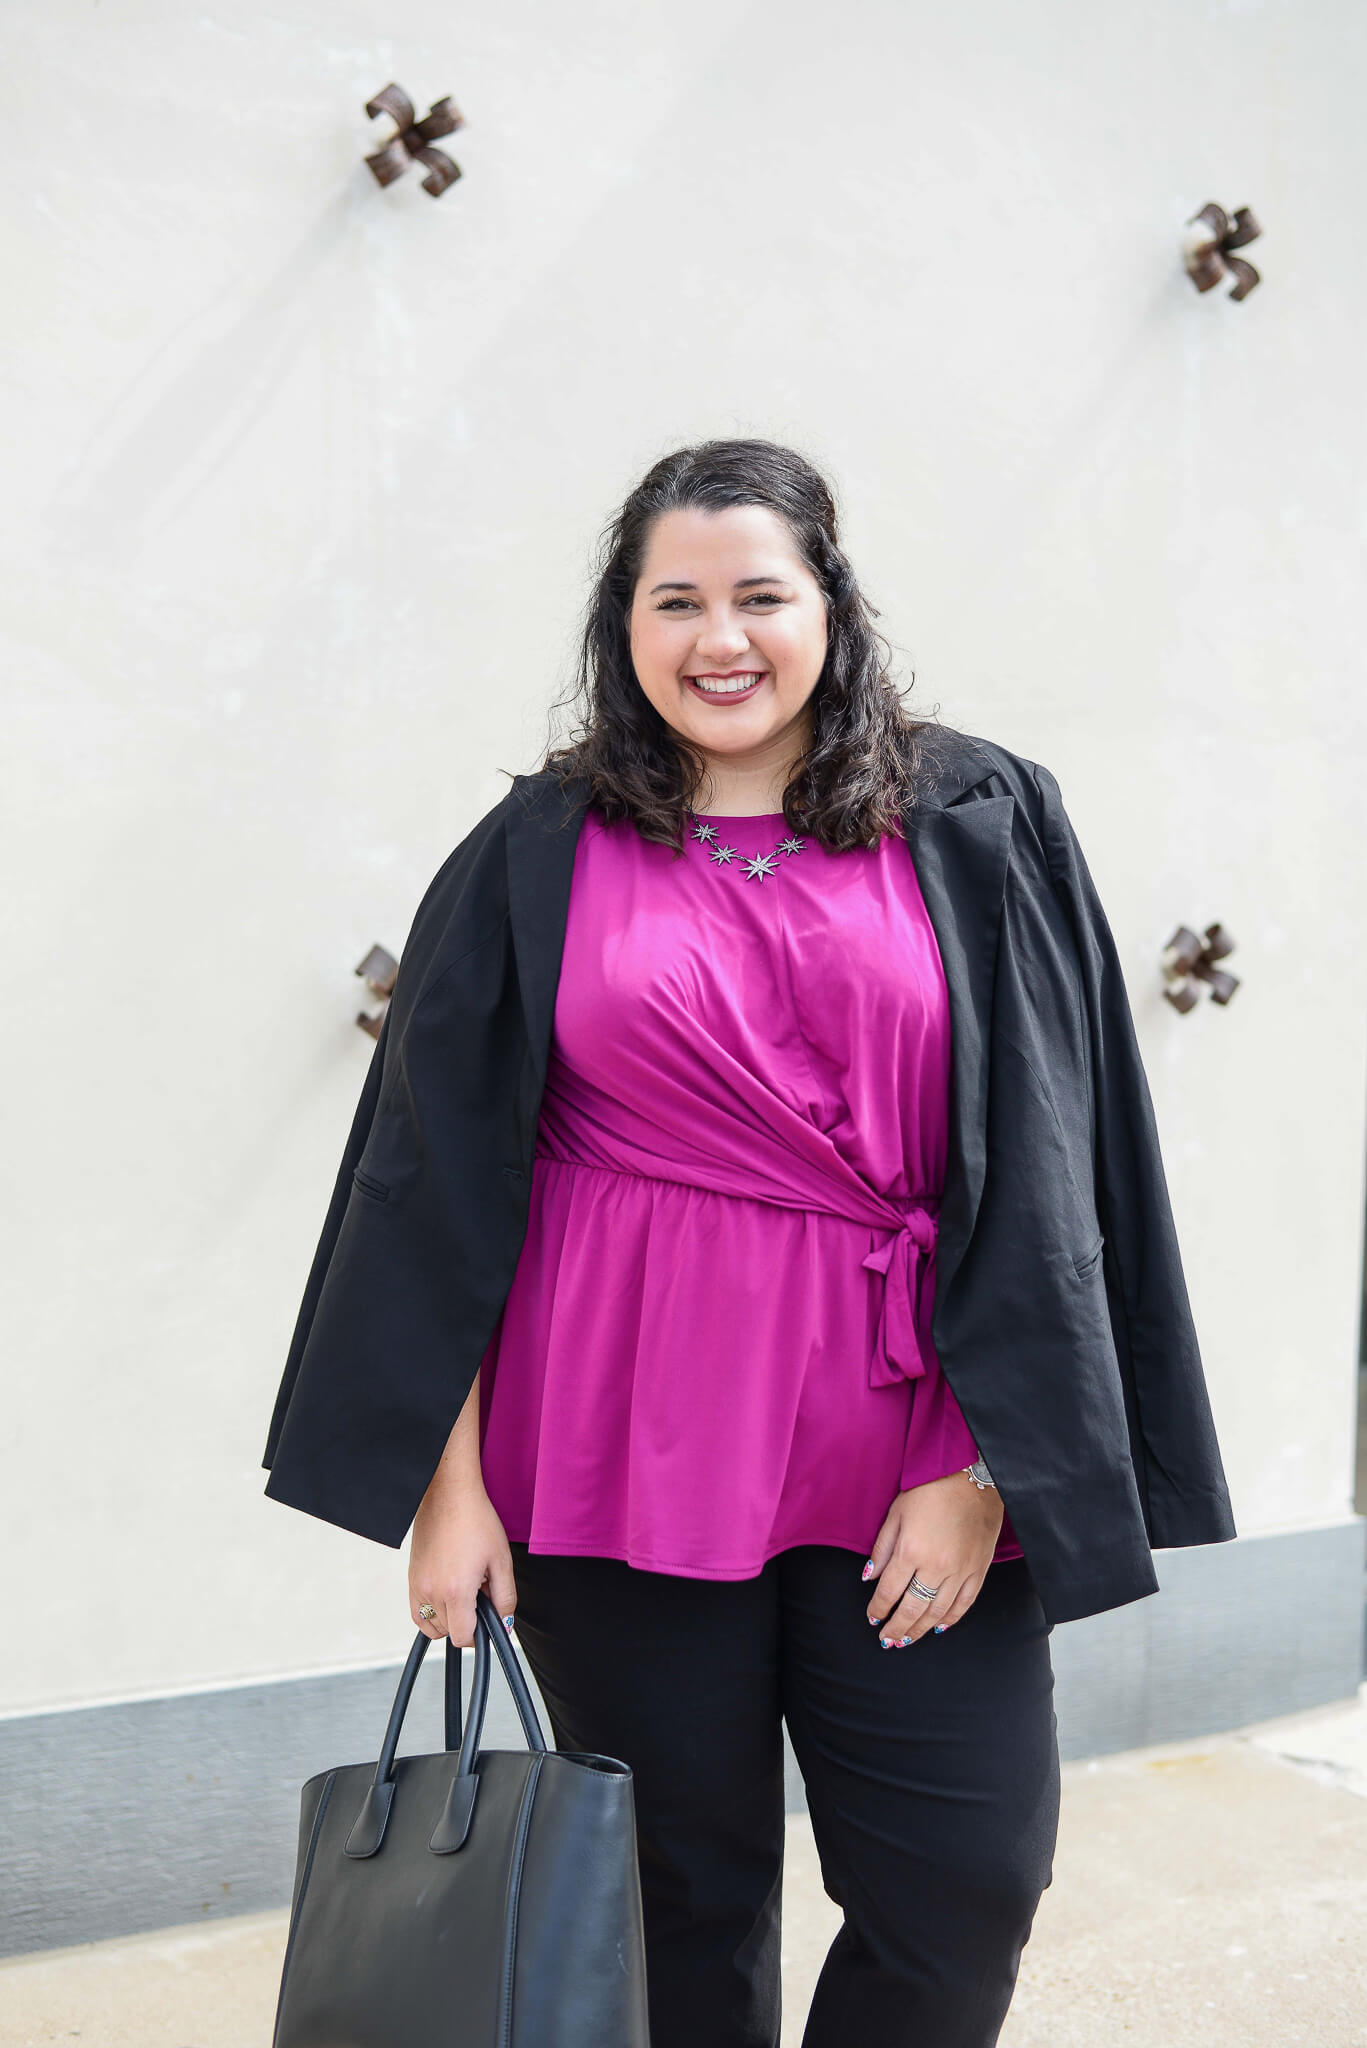 Being a boss babe can be difficult. There are lots of stressors often associated with it, but choosing an outfit shouldn't be one of them. Lane Bryant has curated a section of their website to help you find that perfect work outfit for any office.